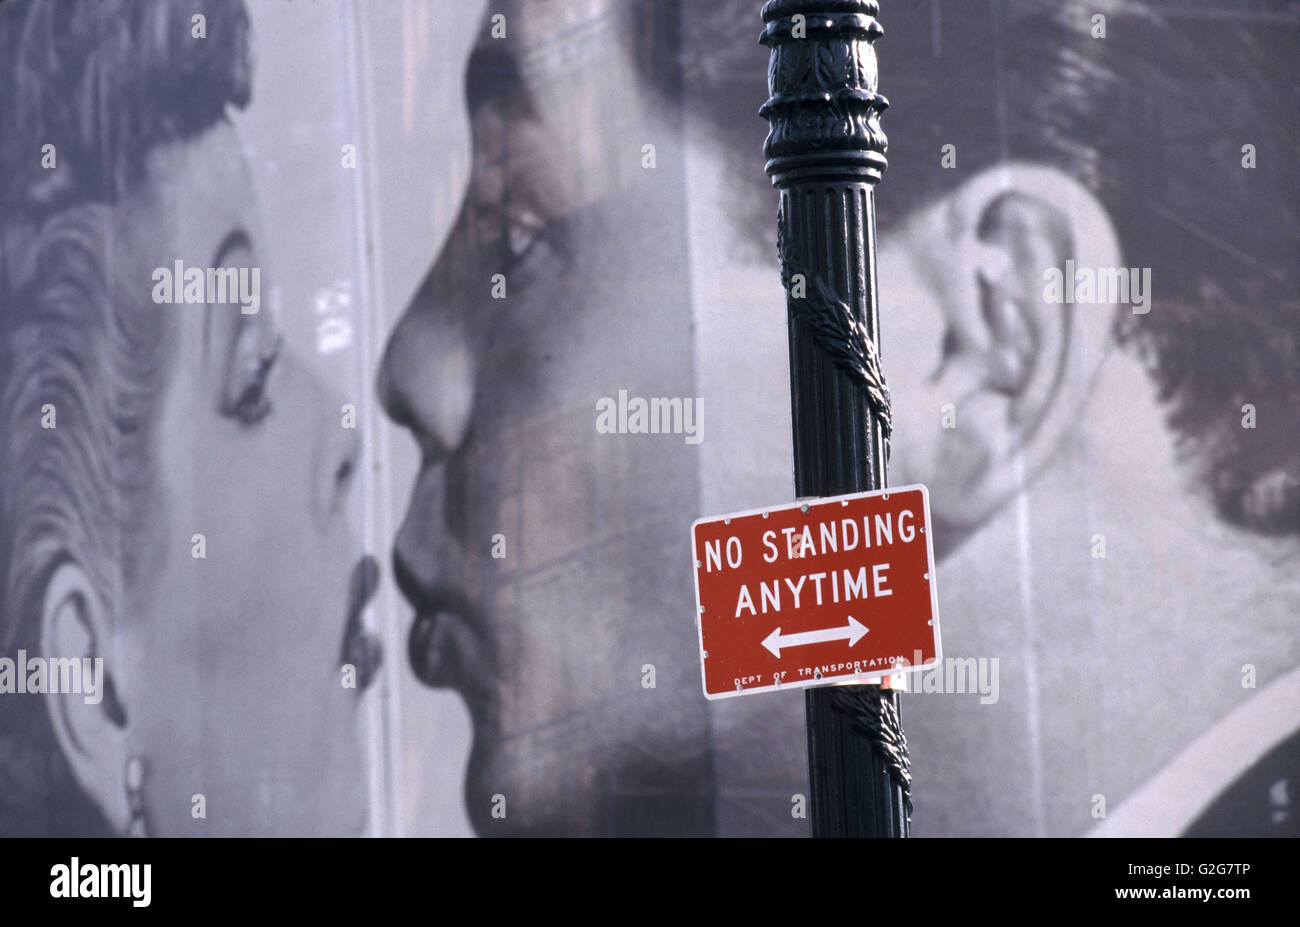 A 'No Standing' parking sign rises in front of a billboard in New York City. - Stock Image